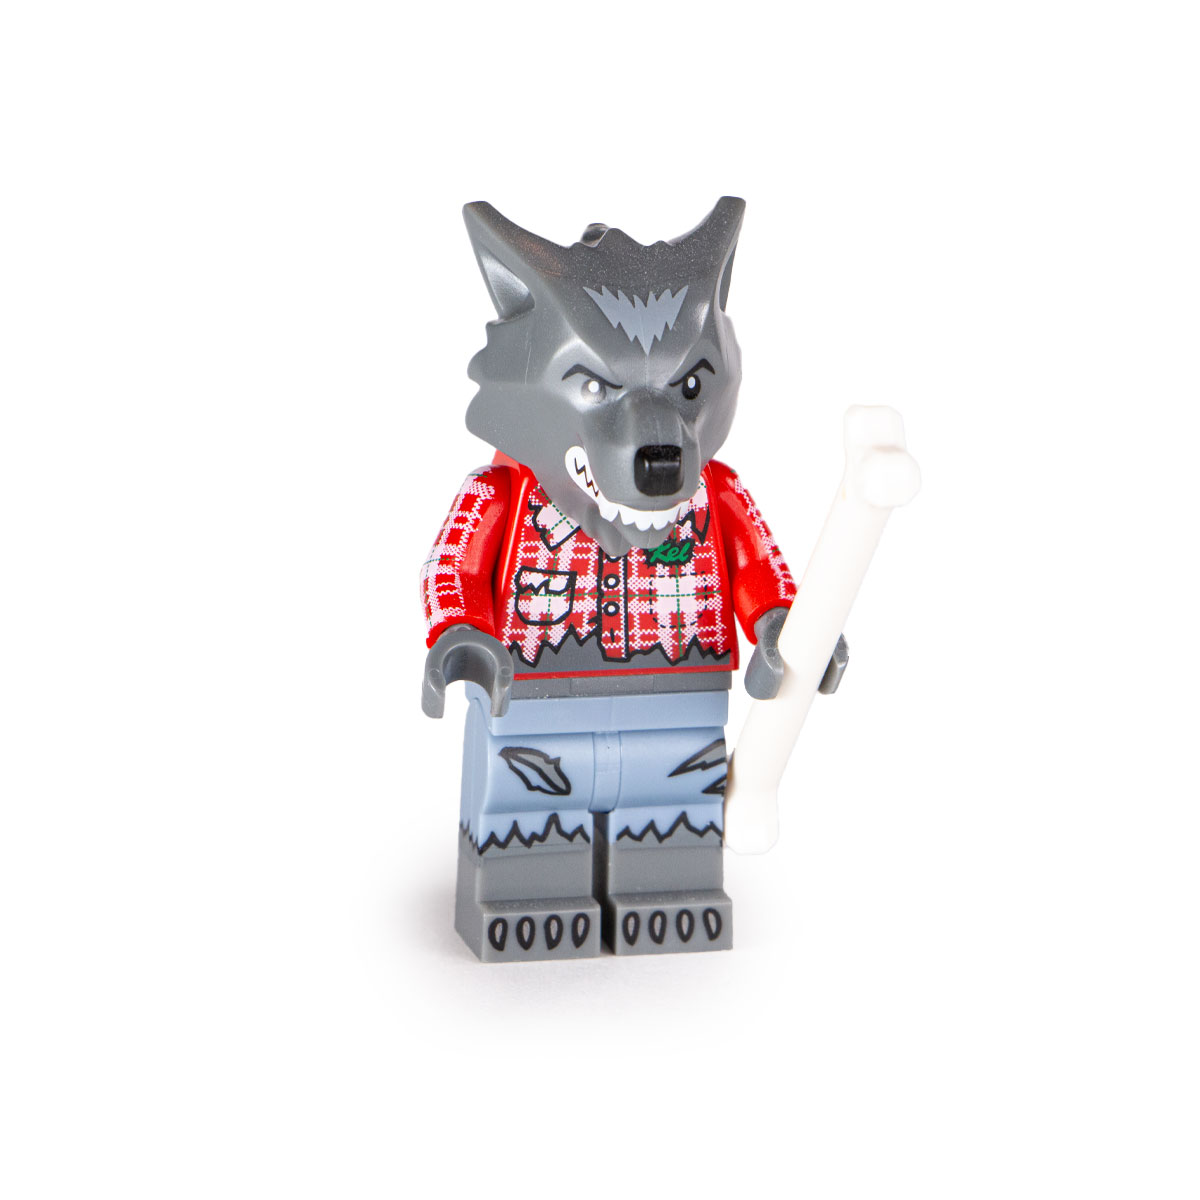 Lego Wolf Guy Collectible Minifigures 71010 Series 14